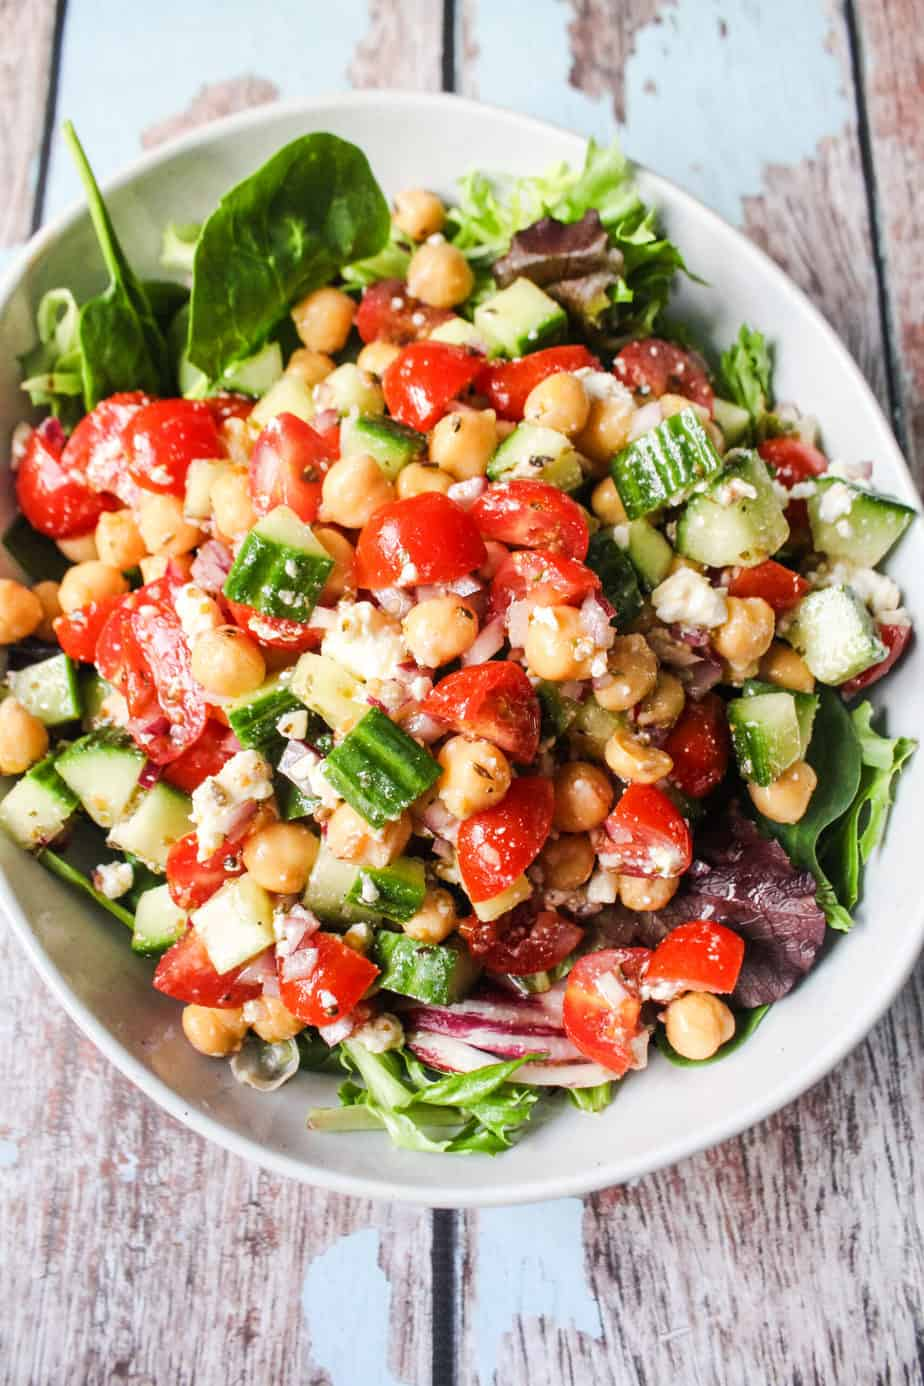 bowl of mixed greens with mediterranean chickpea salad, chickpeas, grape tomatoes, cucumbers, marinated red onions, feta